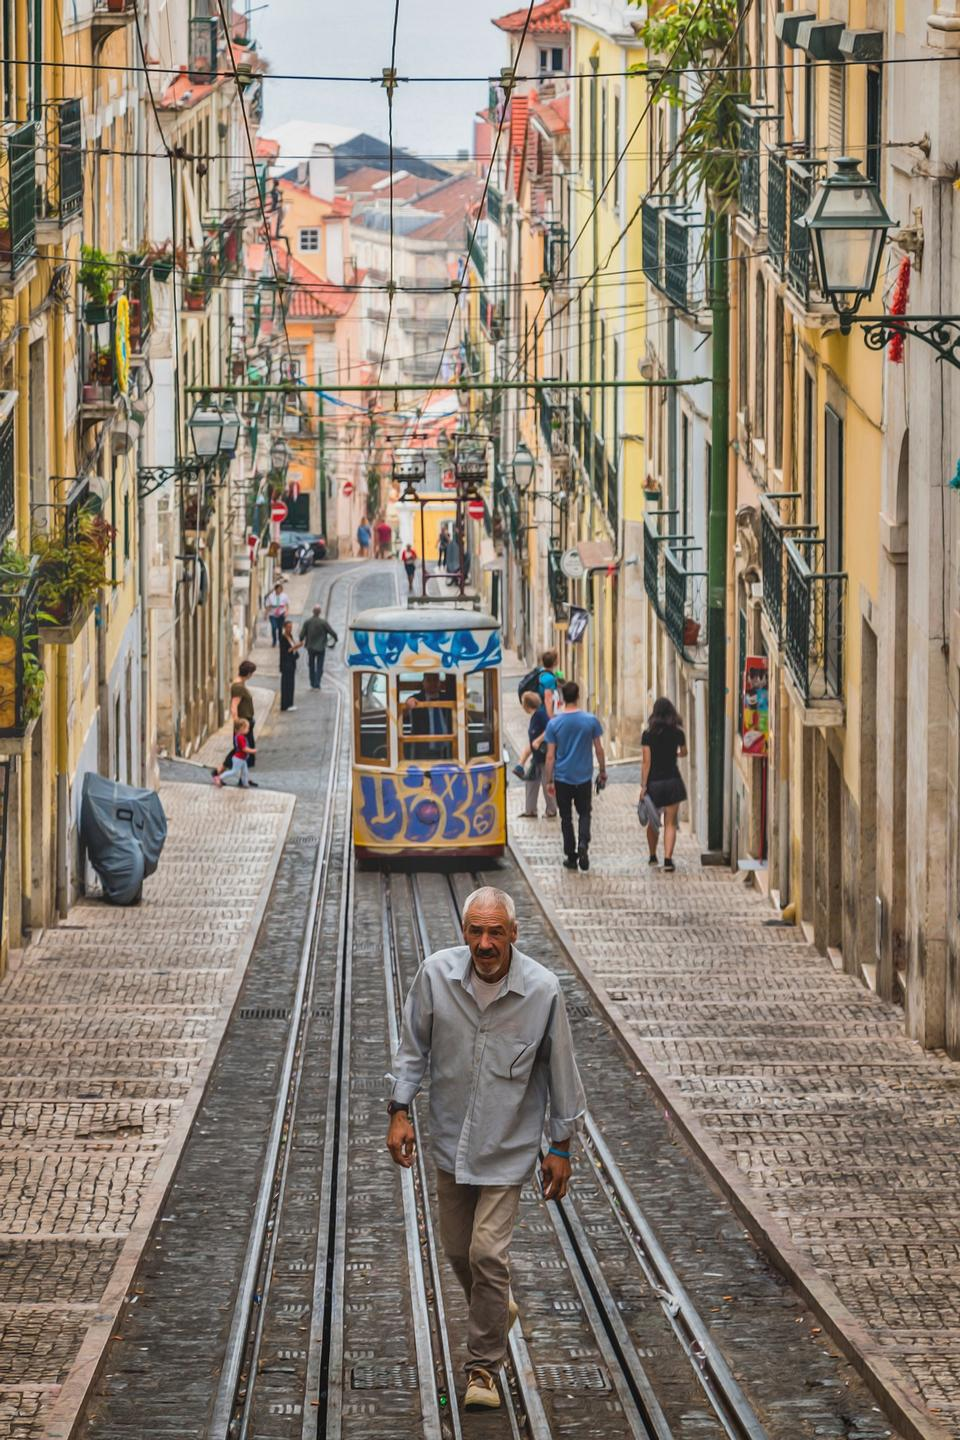 Romantic Lisbon street with the typical yellow tram